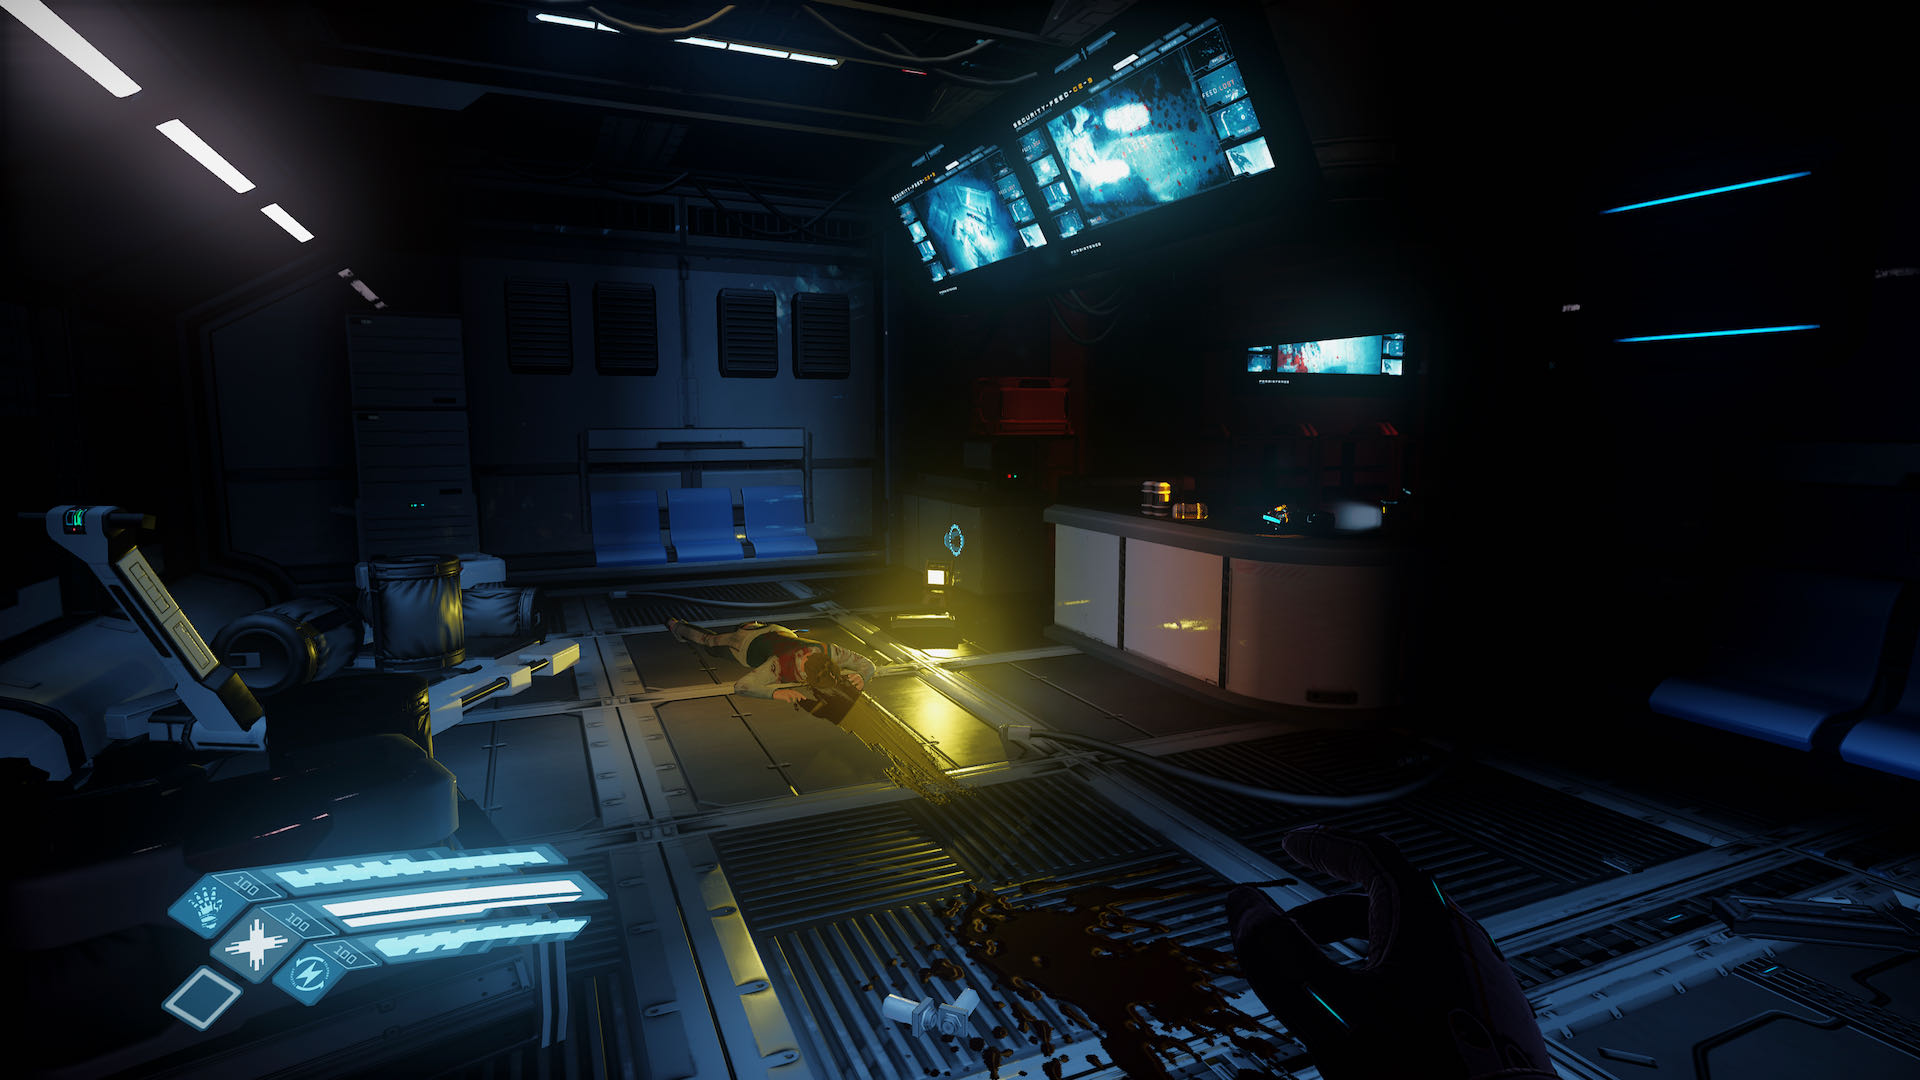 A dark, ominous screenshot from The Persistence, you're in a blood-spattered room and there's a figure lying prone in front of you.